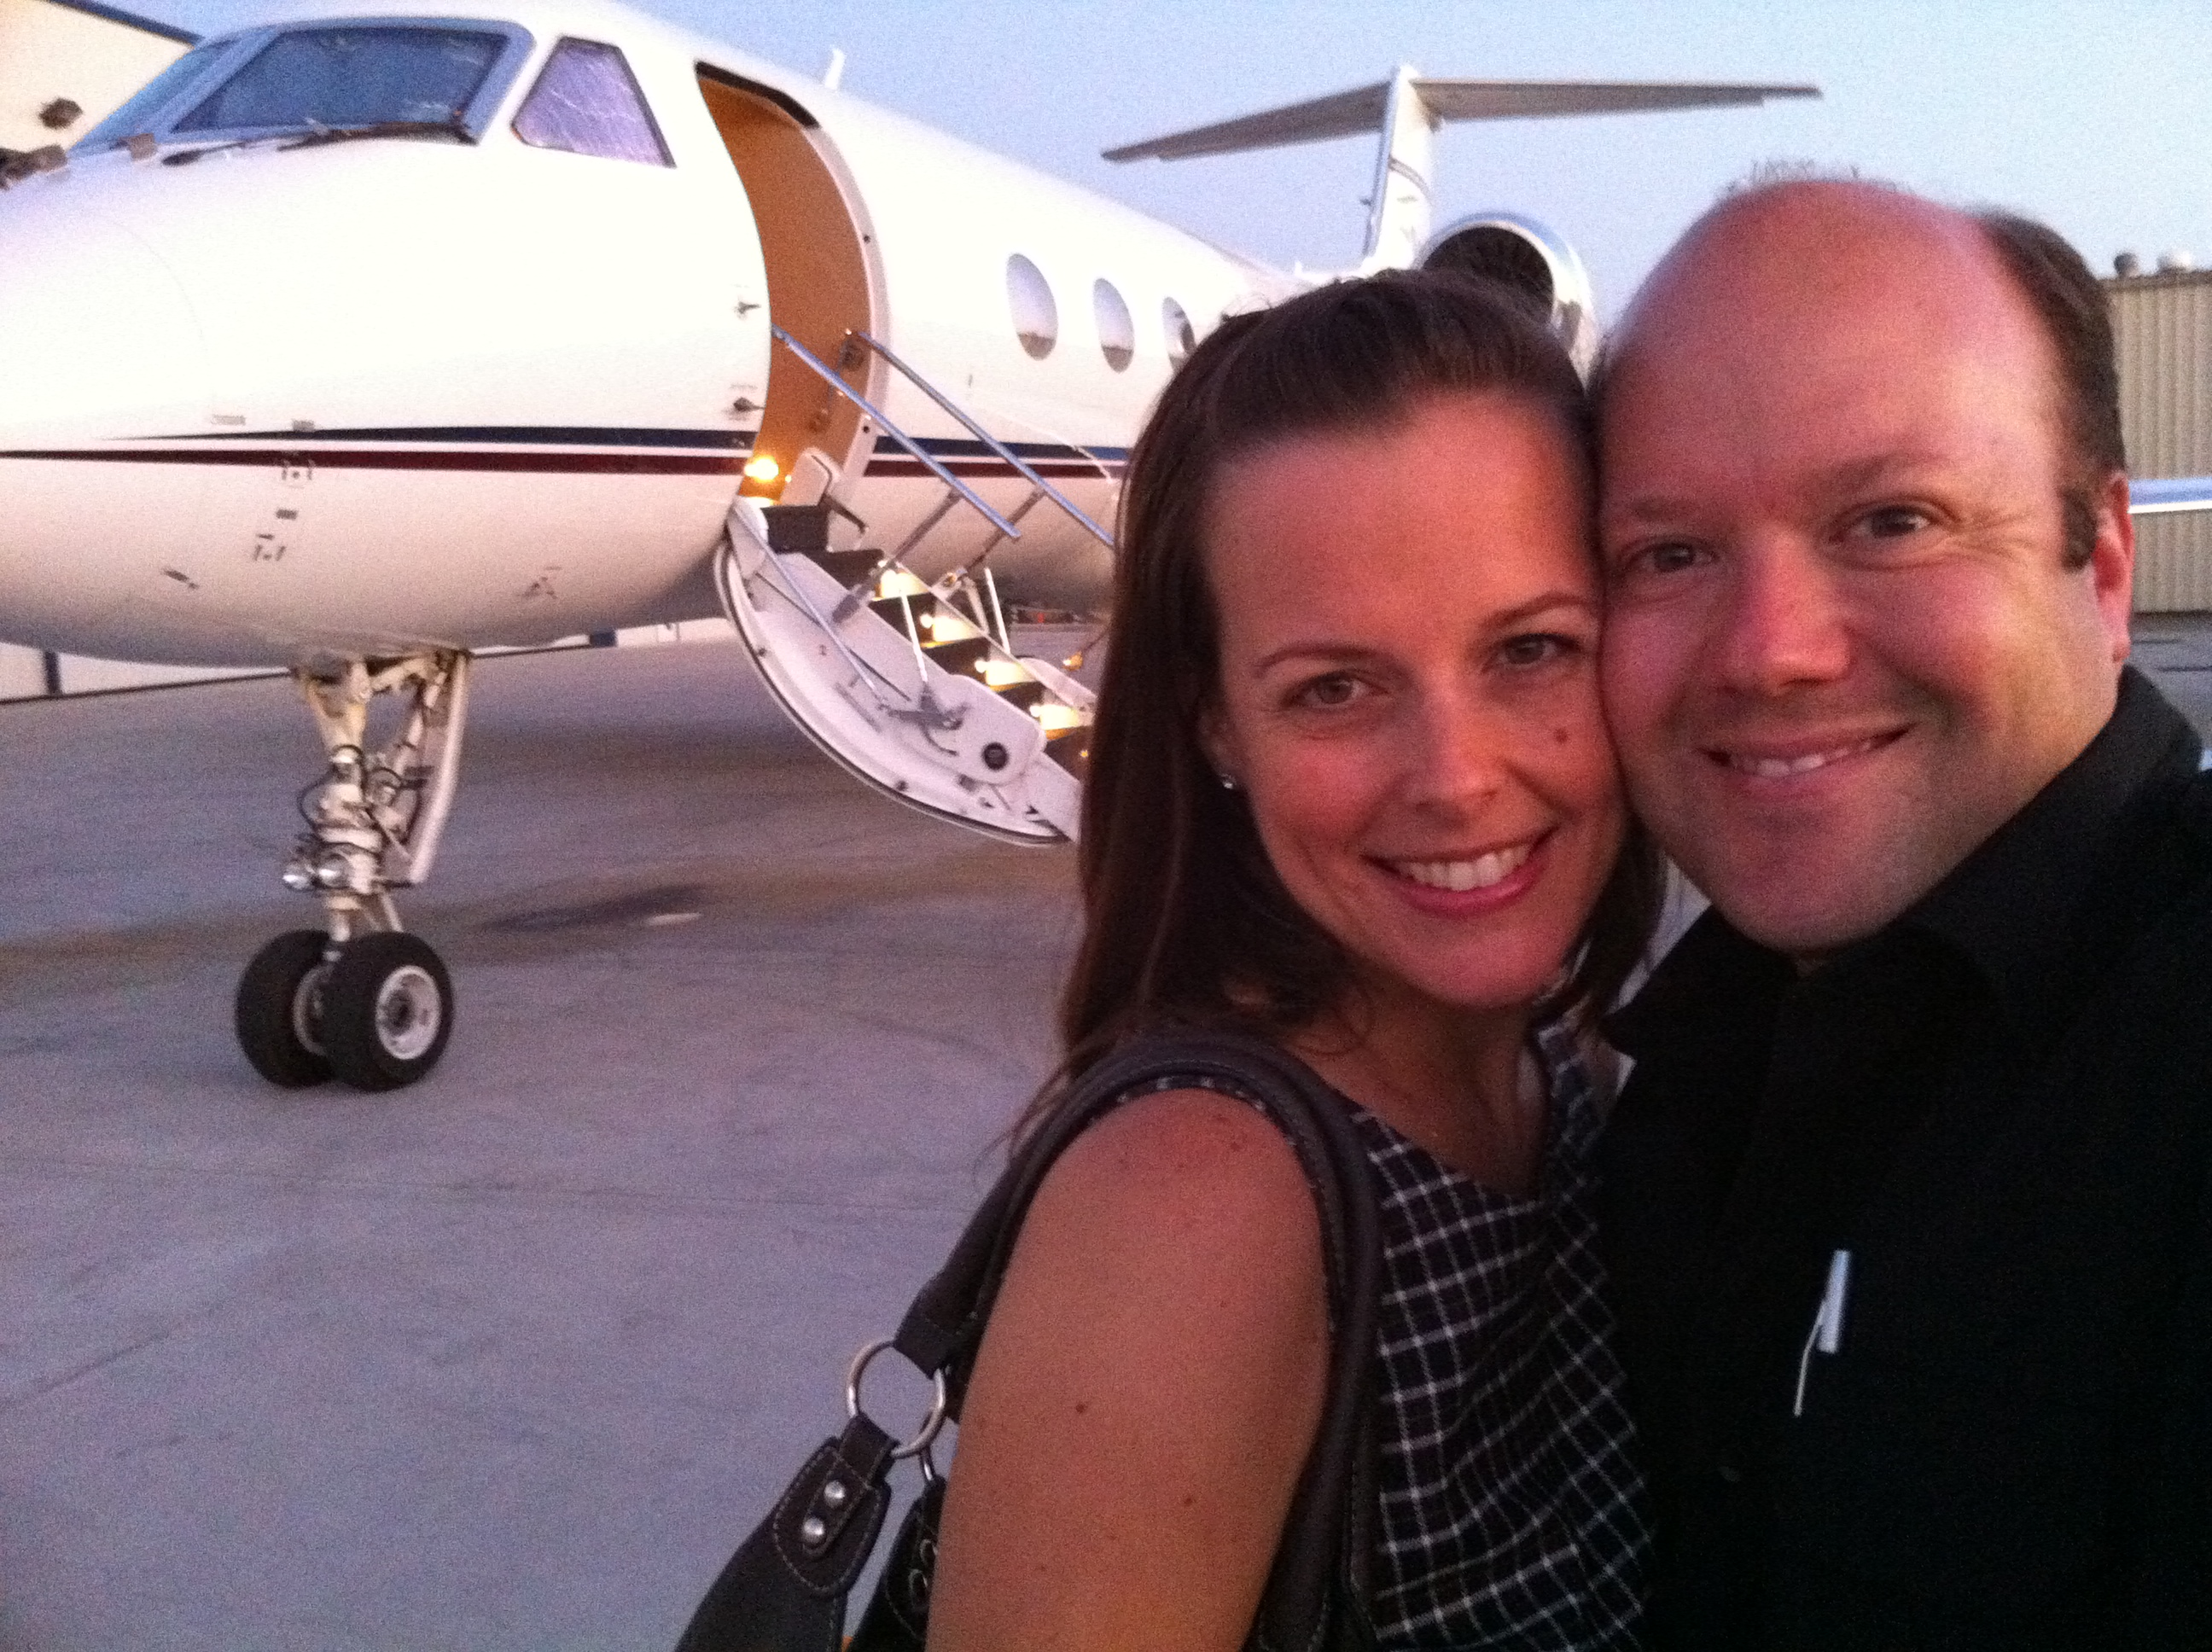 Still giving rides!  My wife gets her first flight in the Gulfstream IV.